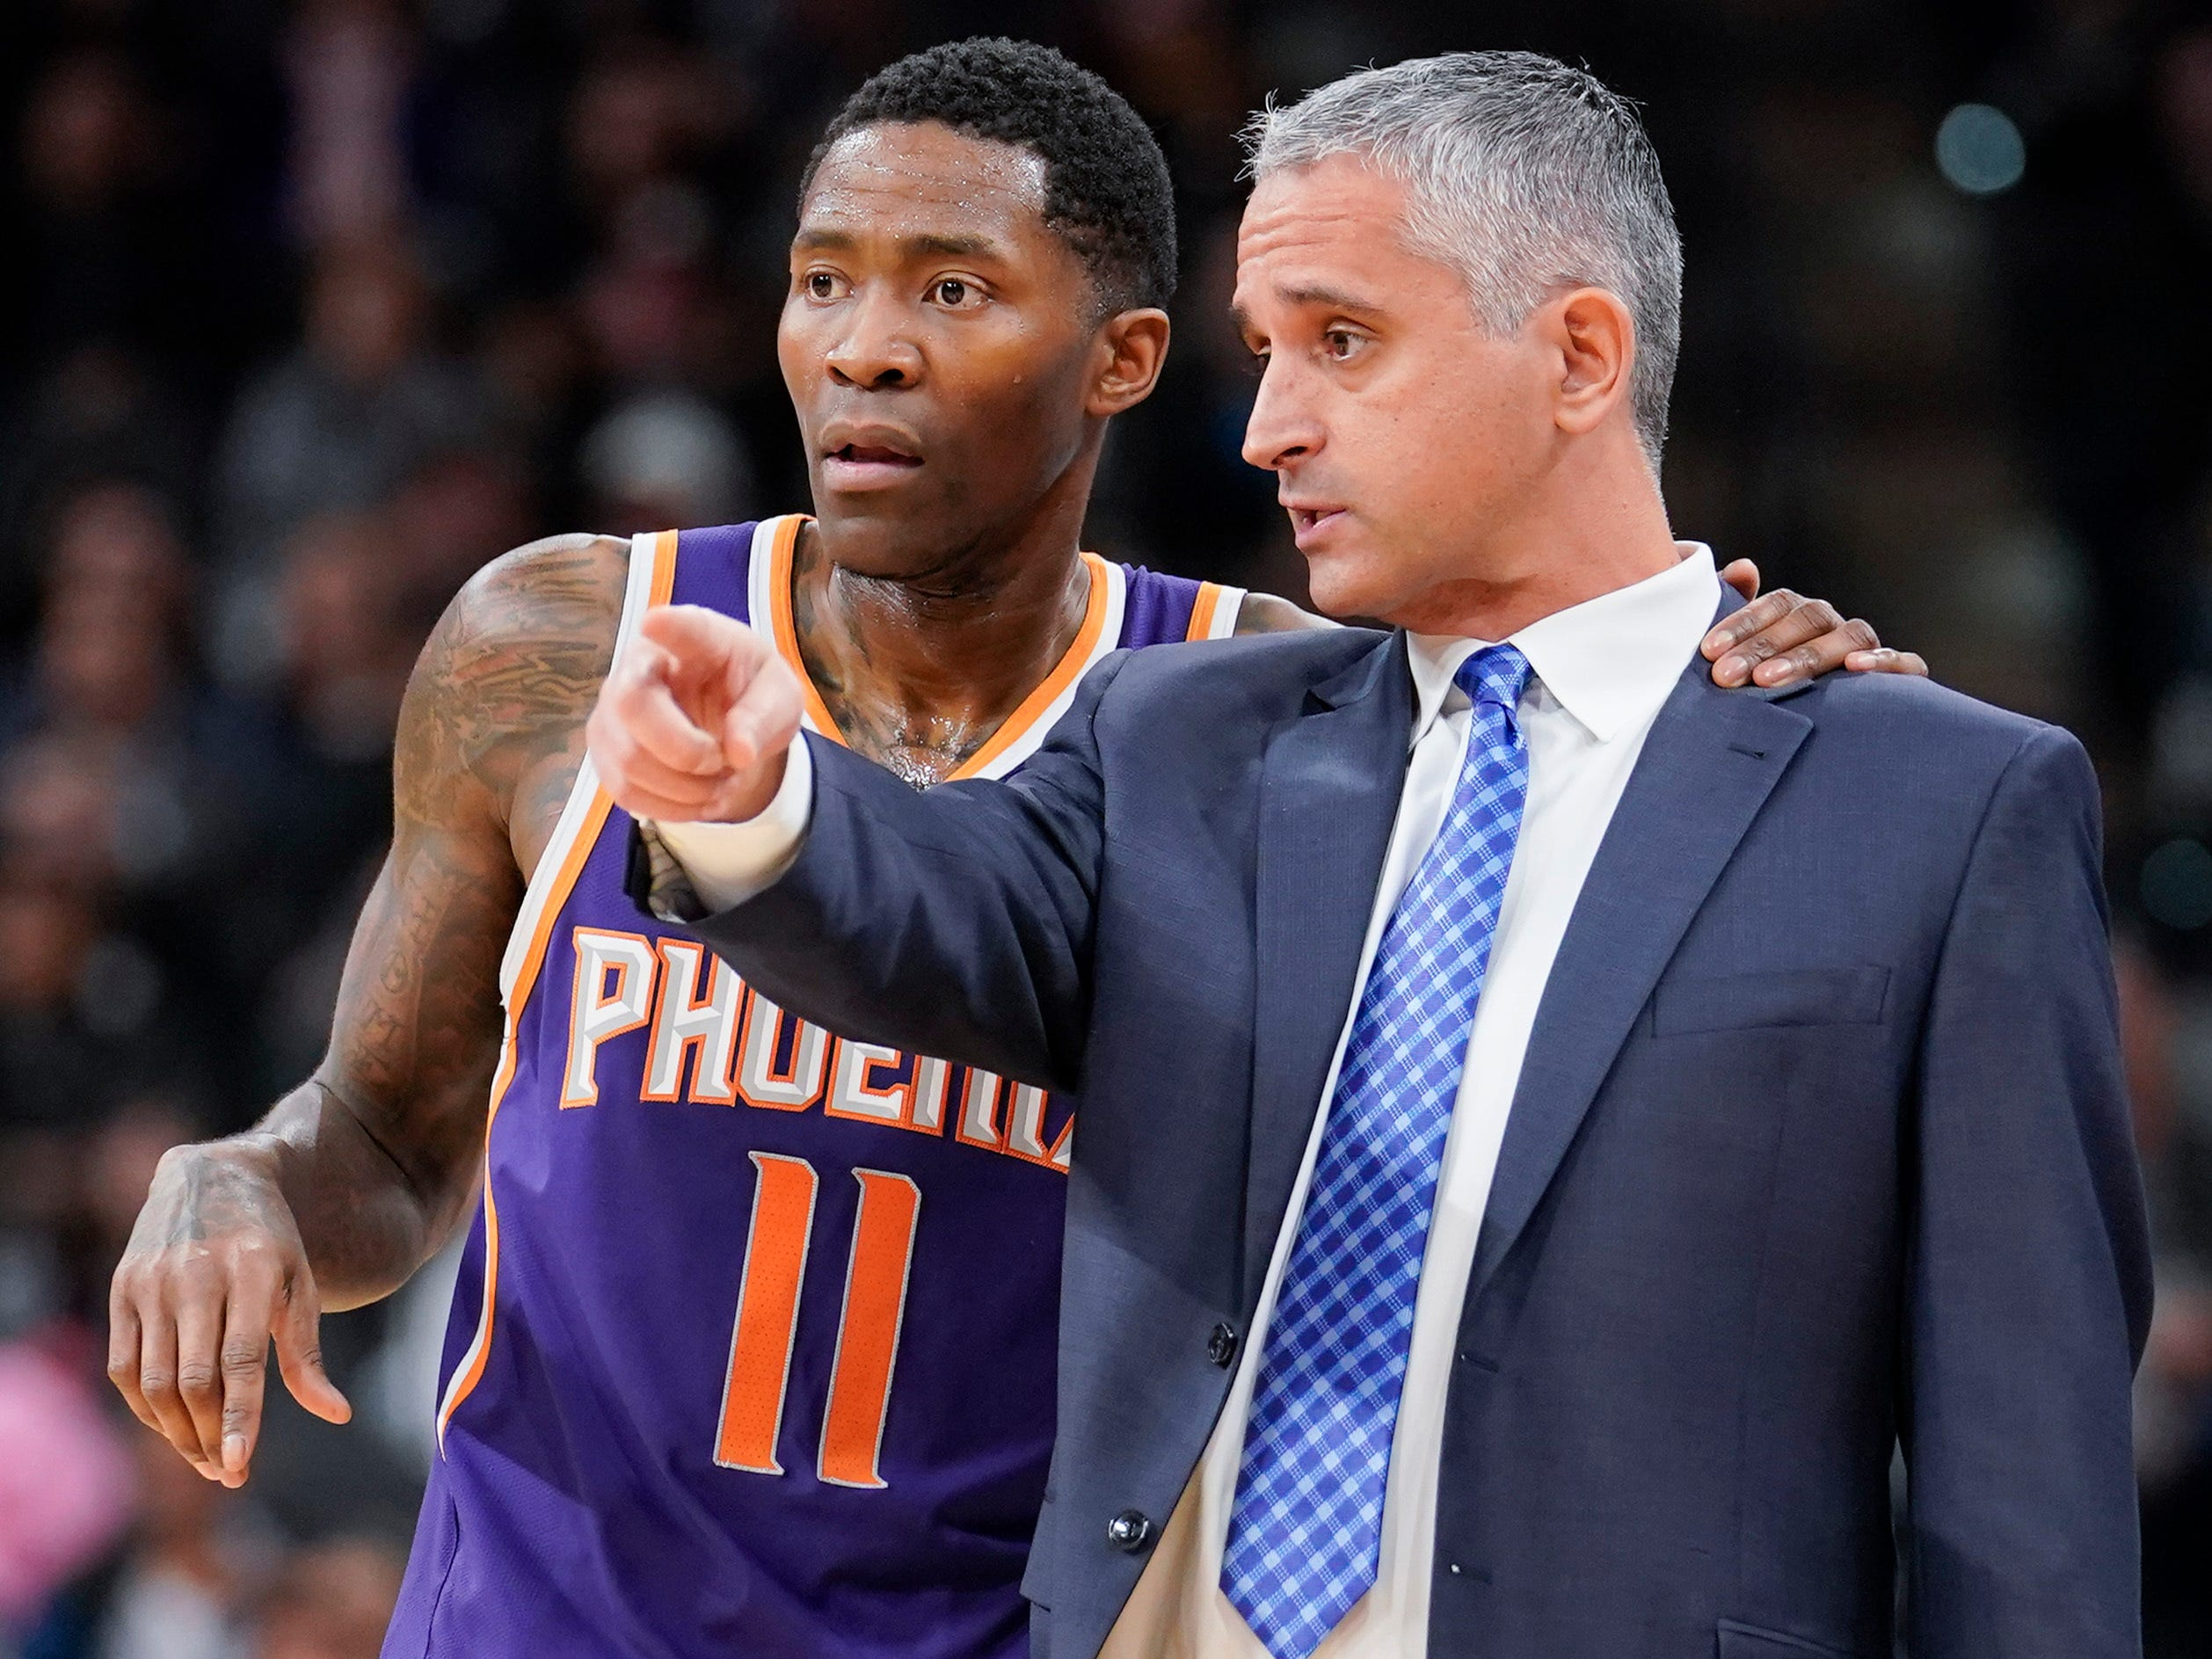 Phoenix Suns head coach Igor Kokoskov, right, talks with Suns guard Jamal Crawford during a timeout in the first half of an NBA basketball game against the San Antonio Spurs, Tuesday, Jan. 29, 2019, in San Antonio. (AP Photo/Darren Abate)